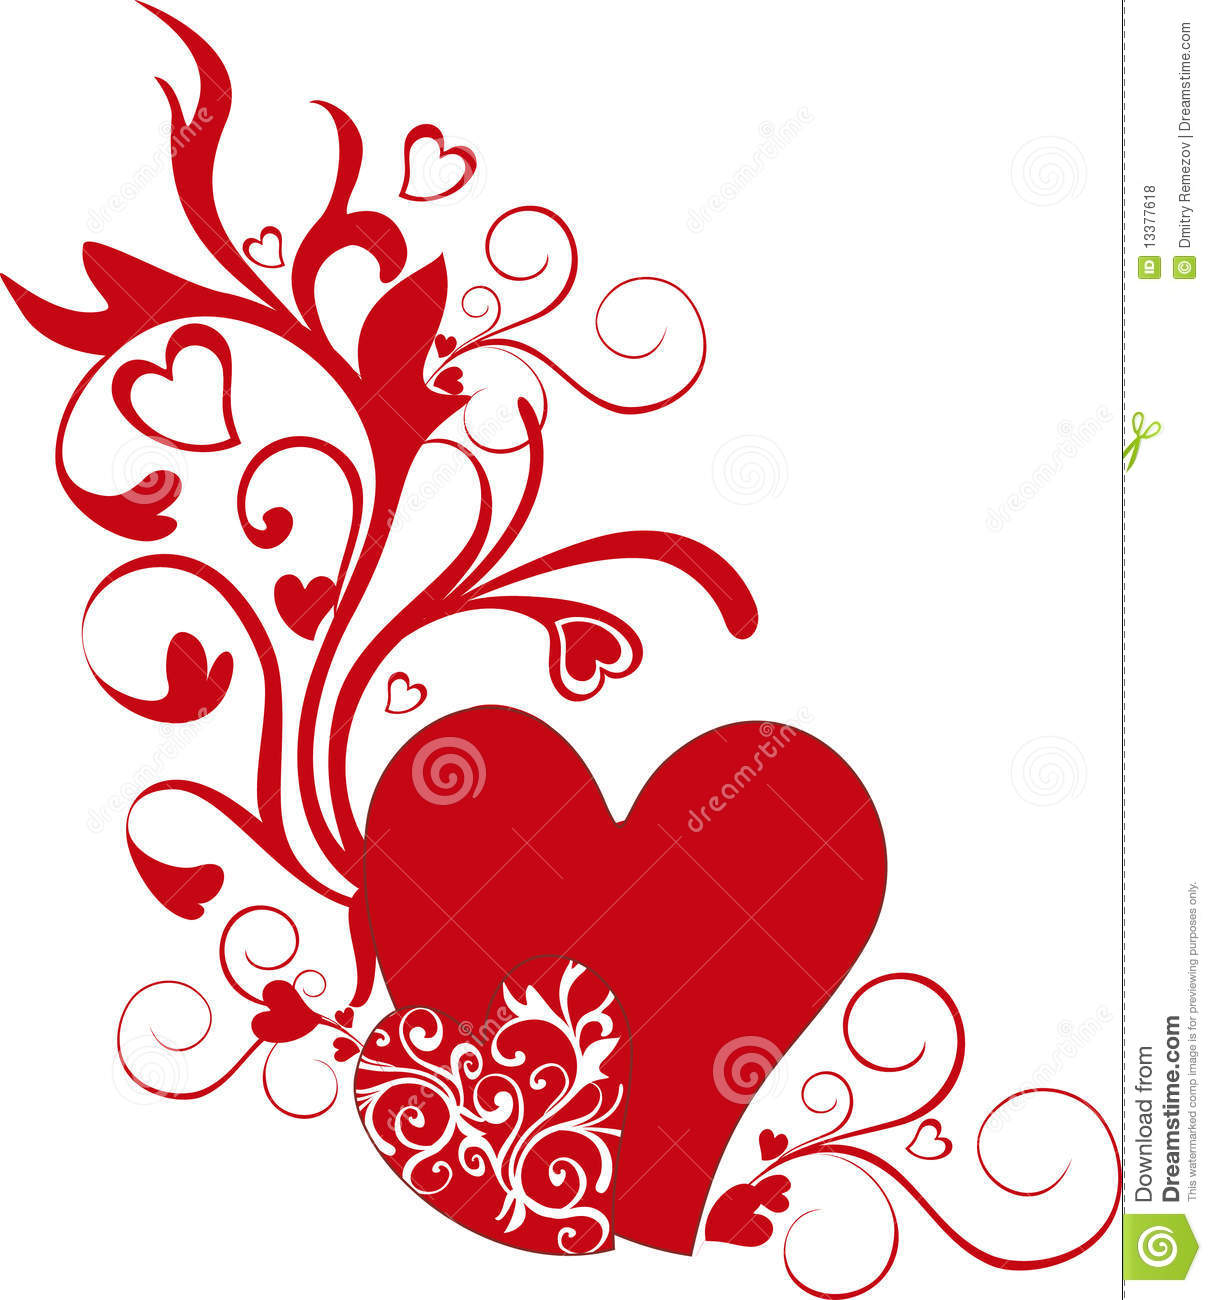 Valentine S Day Heart Shapes Royalty Free Stock Photos